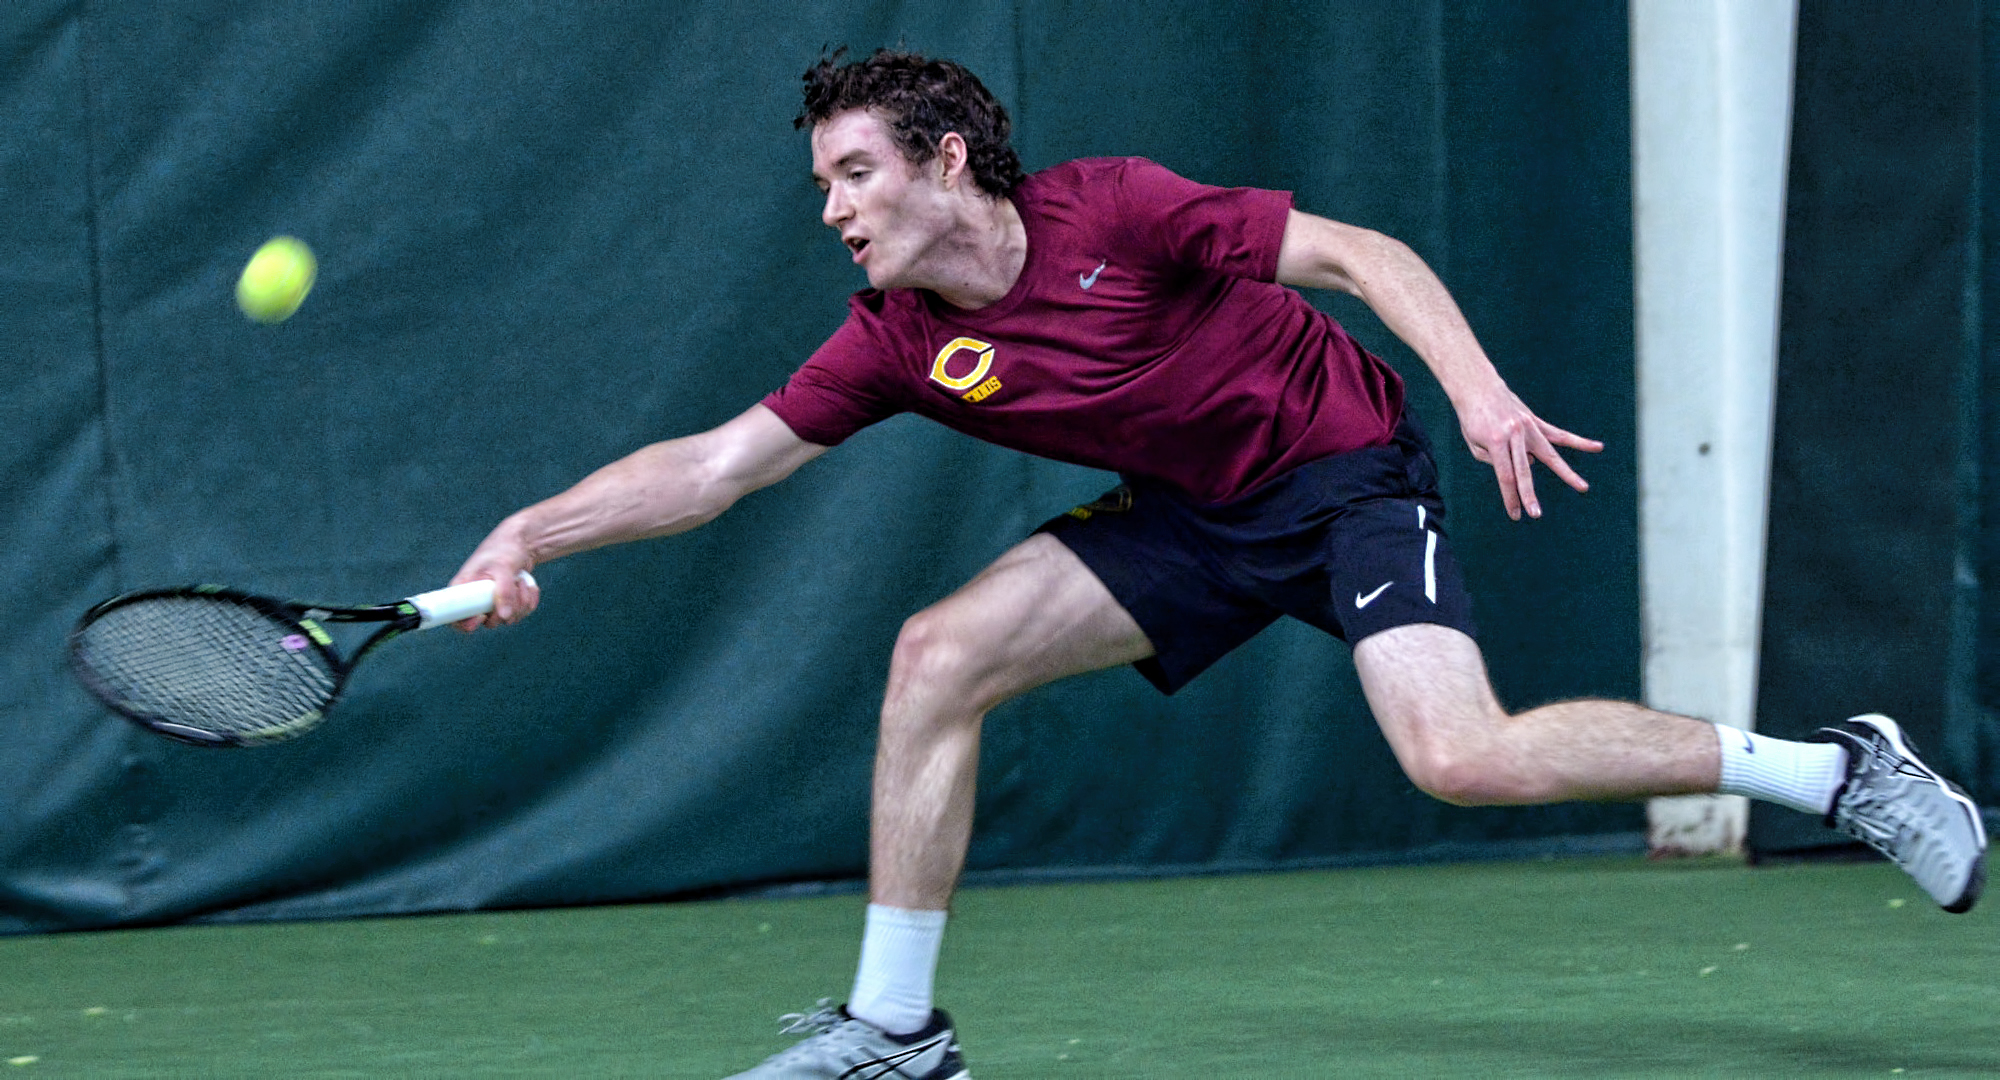 Sophomore Erik Porter stretches for a forehand. He cruised to a 6-1, 6-1 win at No.2 singles in the Cobbers' 5-4 win over St. Olaf.